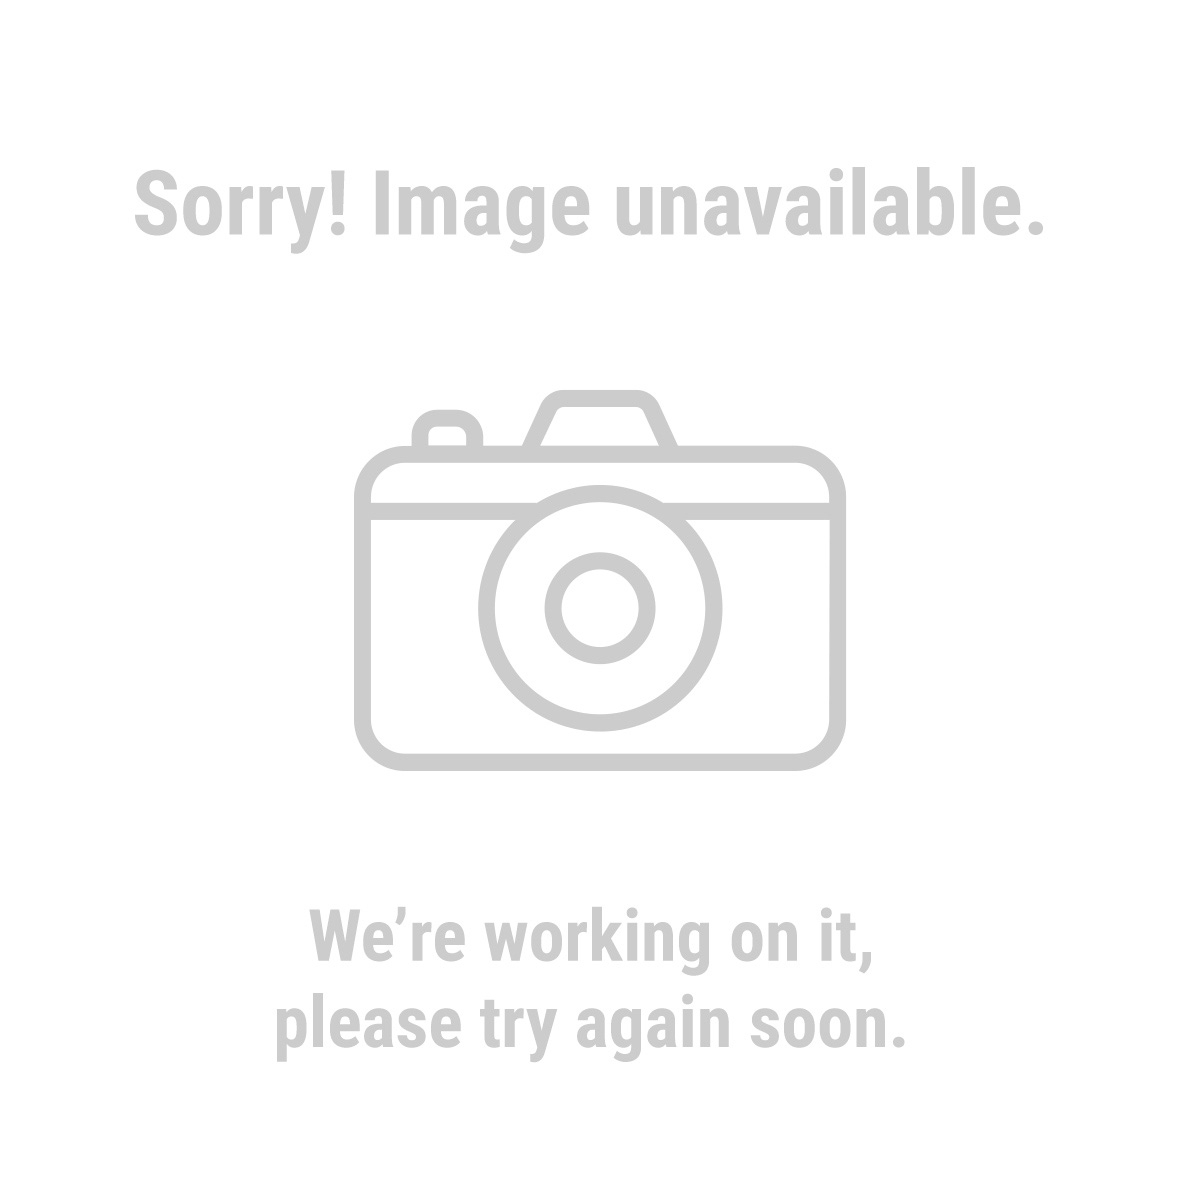 Review Performax Sliding Miter Saw By Raymond